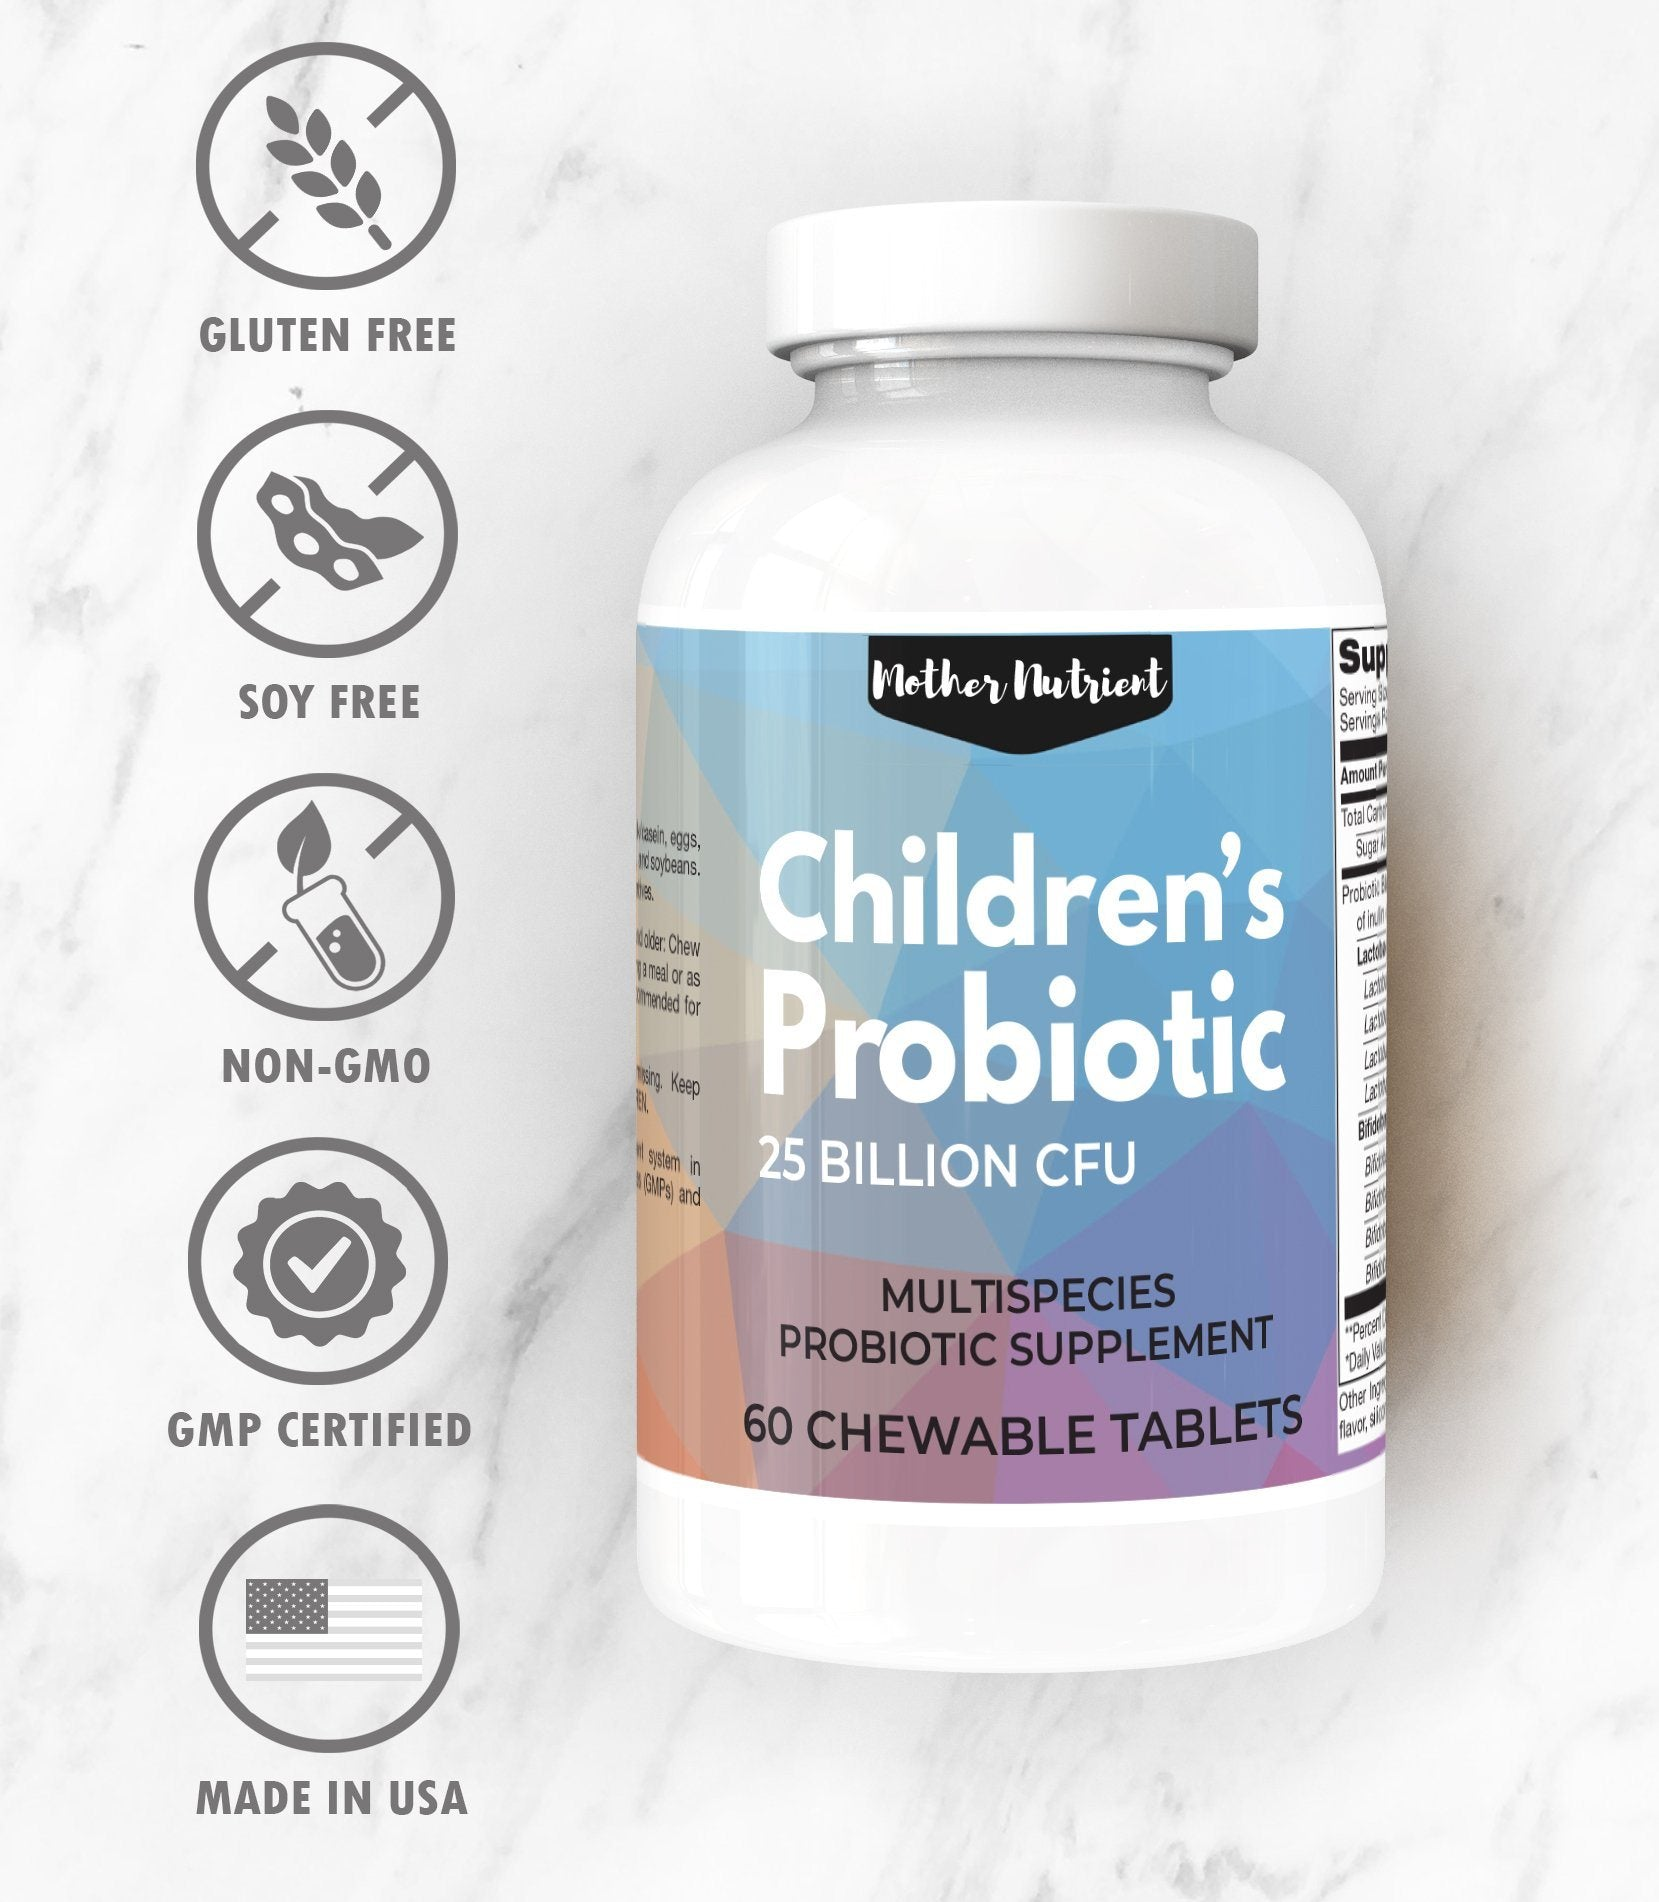 Children's Probiotic - Mother Nutrient